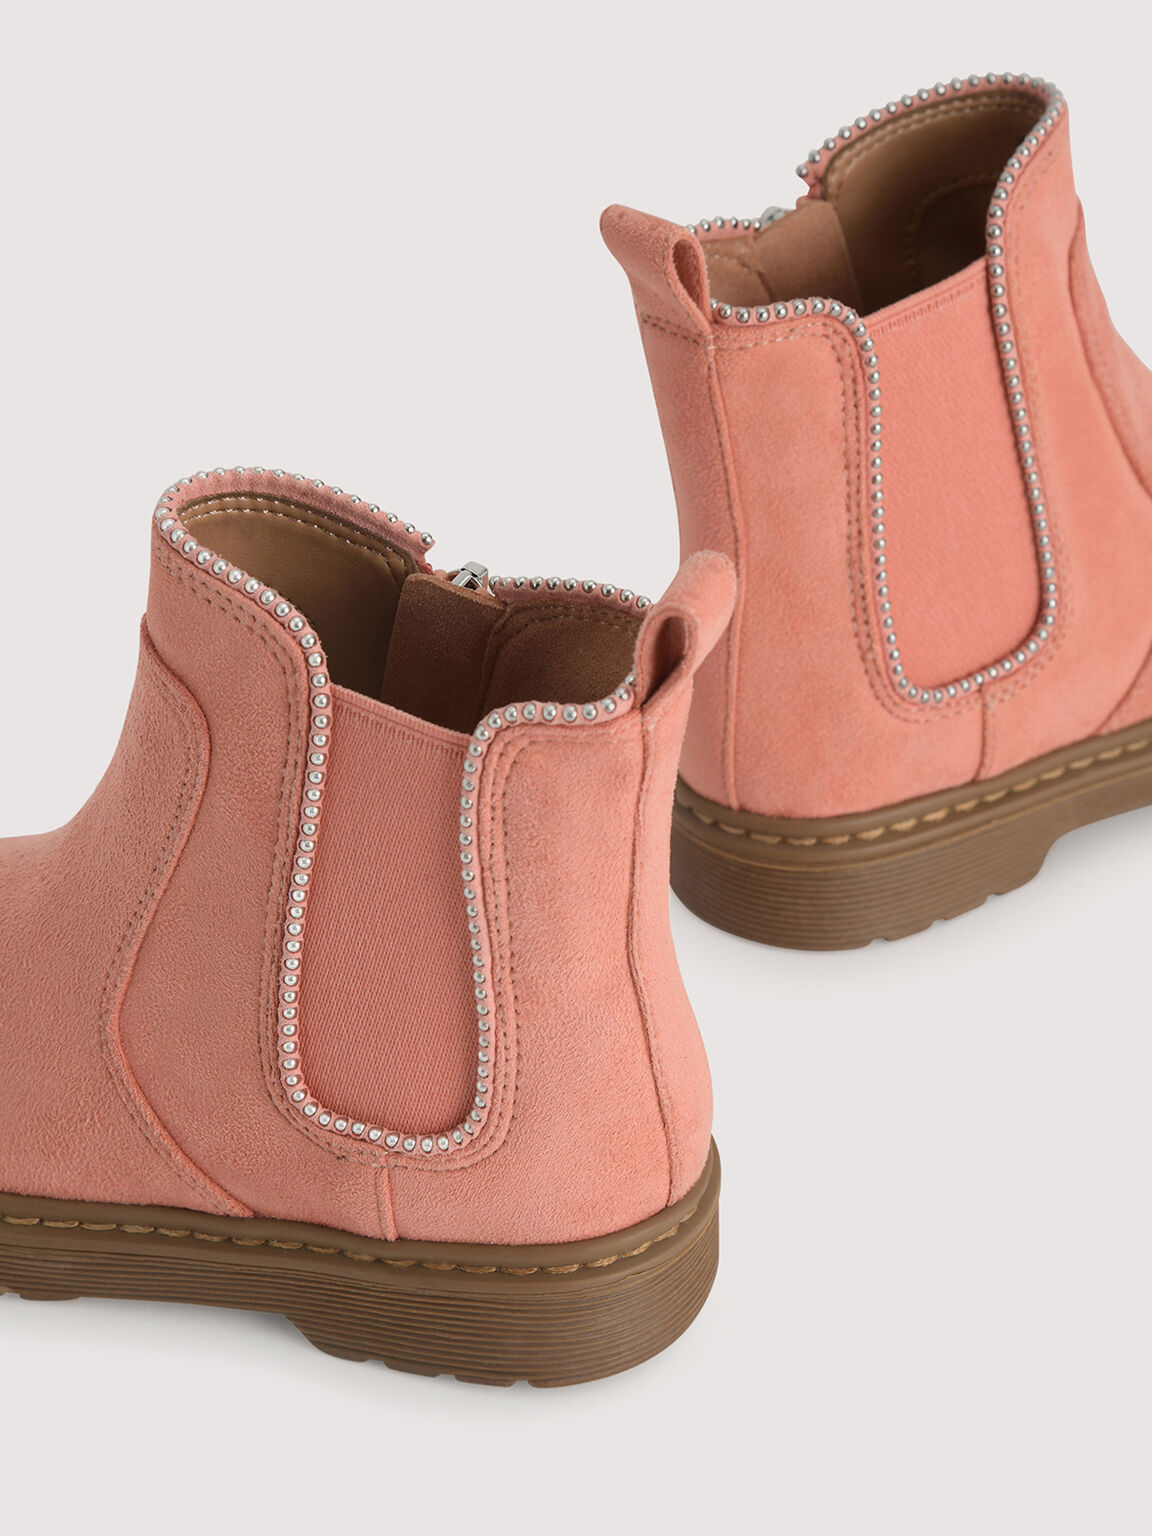 Chelsea Boots with Pearl Detailing, Coral, hi-res